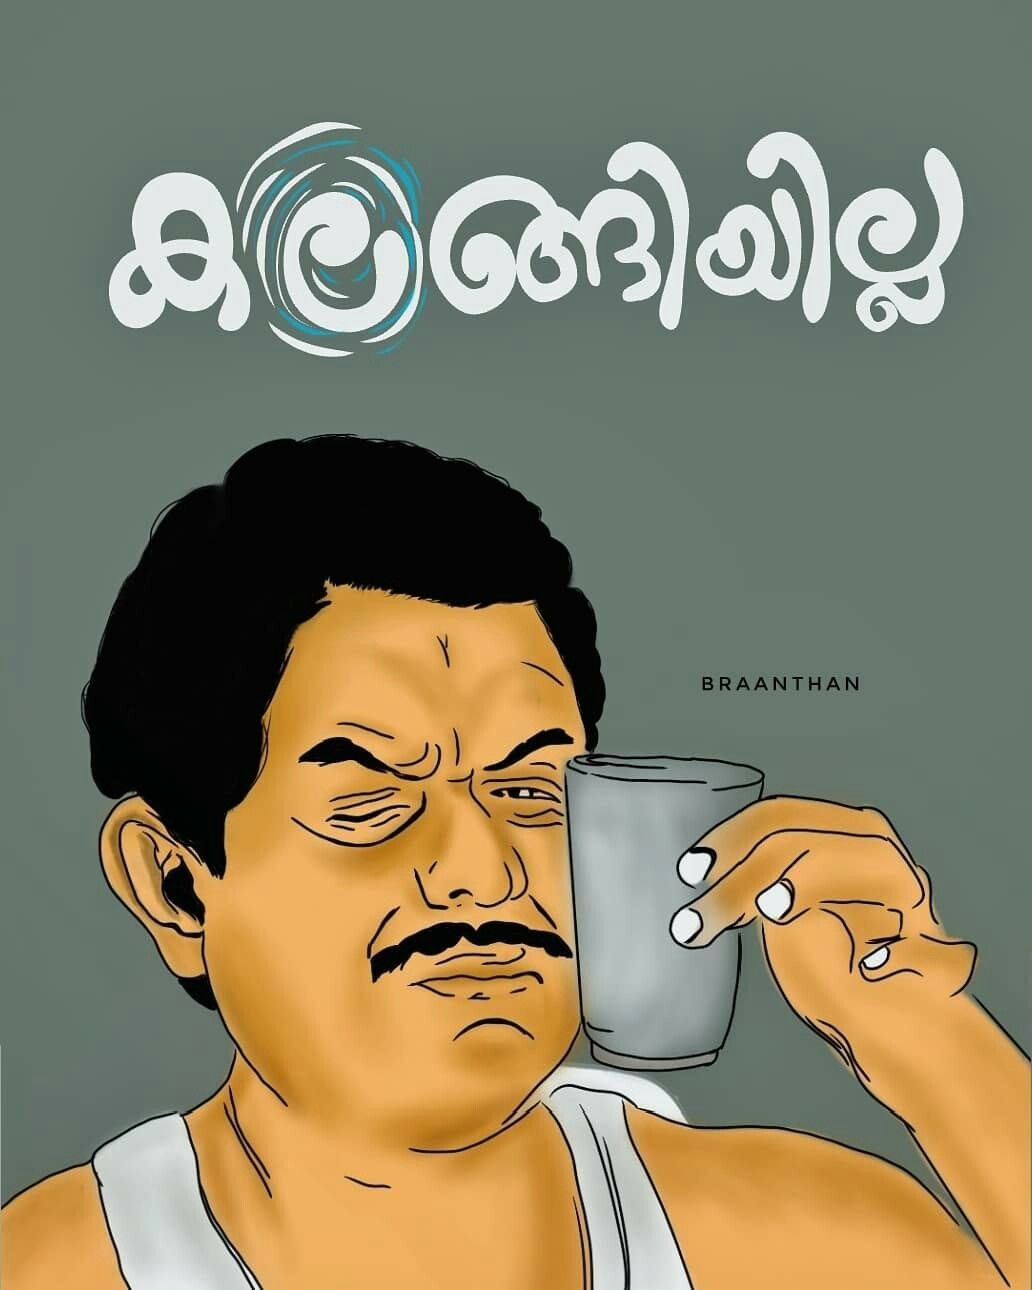 À´®à´²à´¯ À´³ Quote Funny Dialogues Love Quotes In Malayalam Comedy Quotes